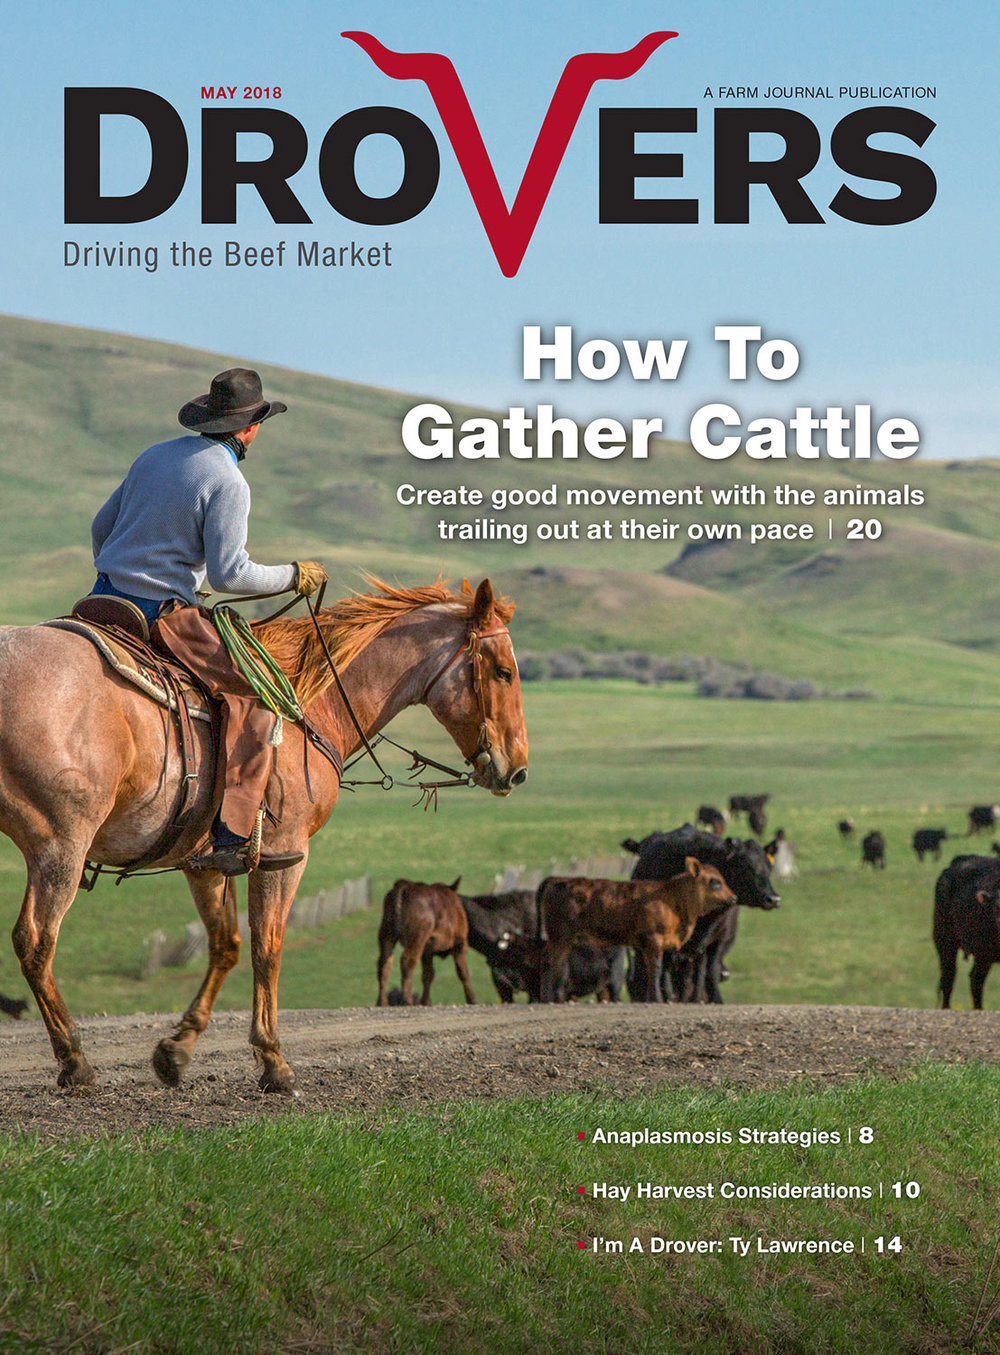 Cowboy Stock Images on Cover of Drovers Cattle Industry Trade Publication